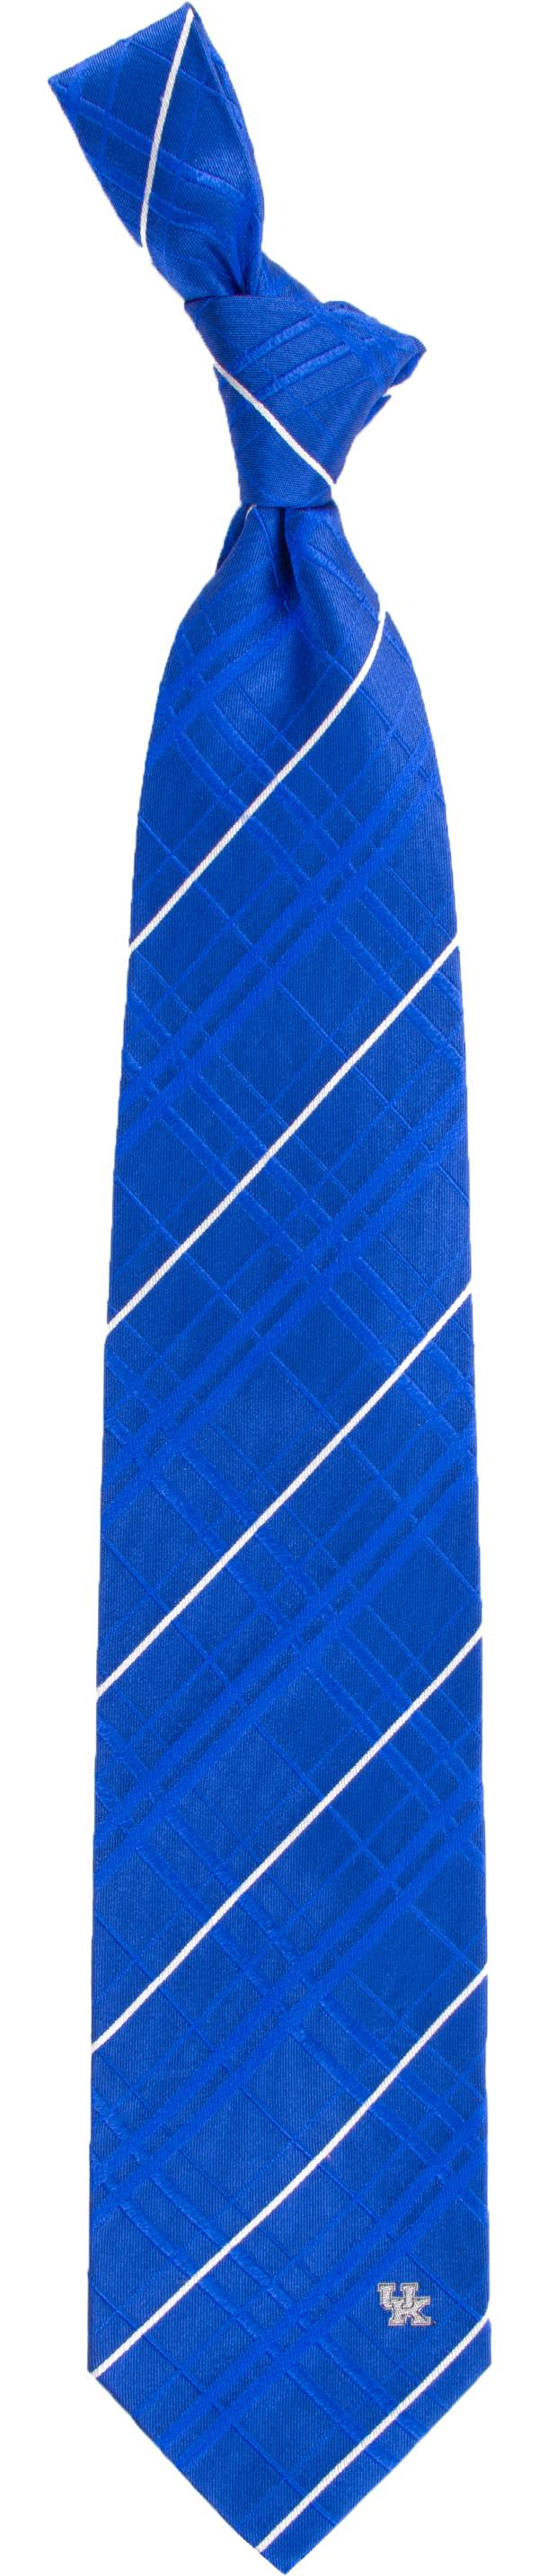 Eagles Wings Kentucky Wildcats Woven Oxford Necktie product image